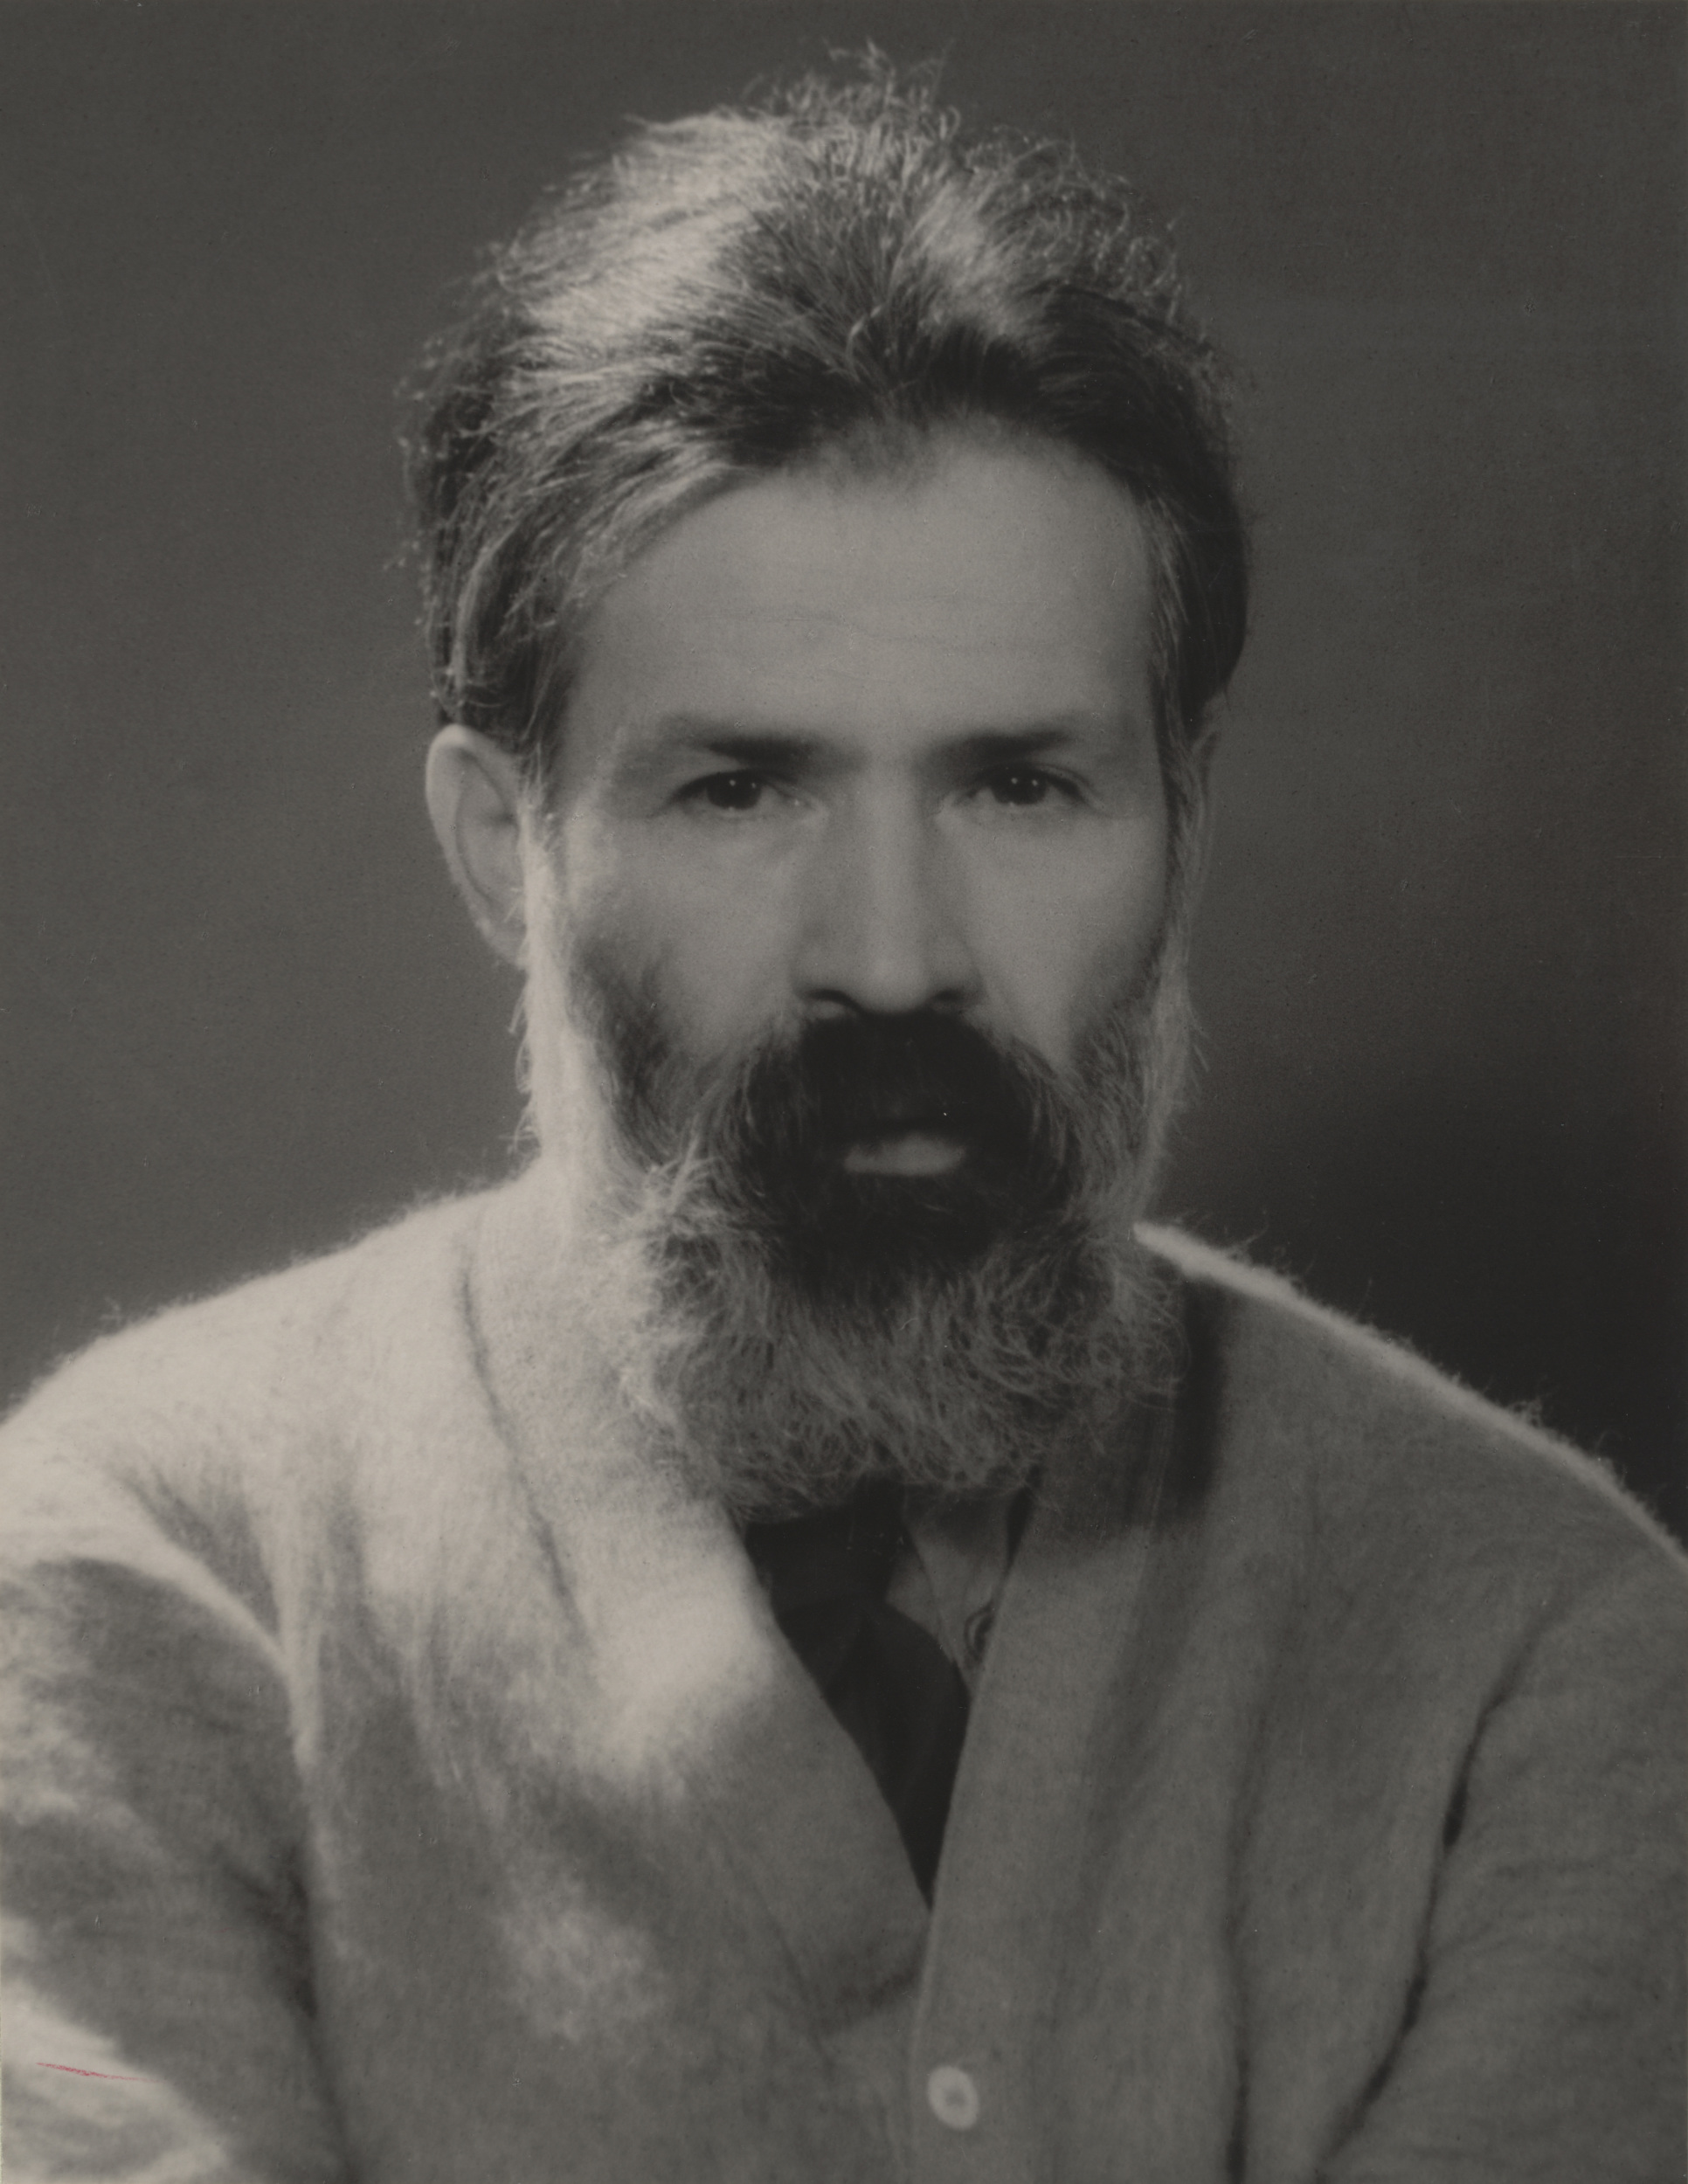 an analysis of the topic of the constantine brancusi Constantin brancusi sculpture authentication experts both, it is essential to know if the project is viable and in the final analysis, provable key: constantin brancusi, brancusi, brancusi sculpture, fake brancusi.